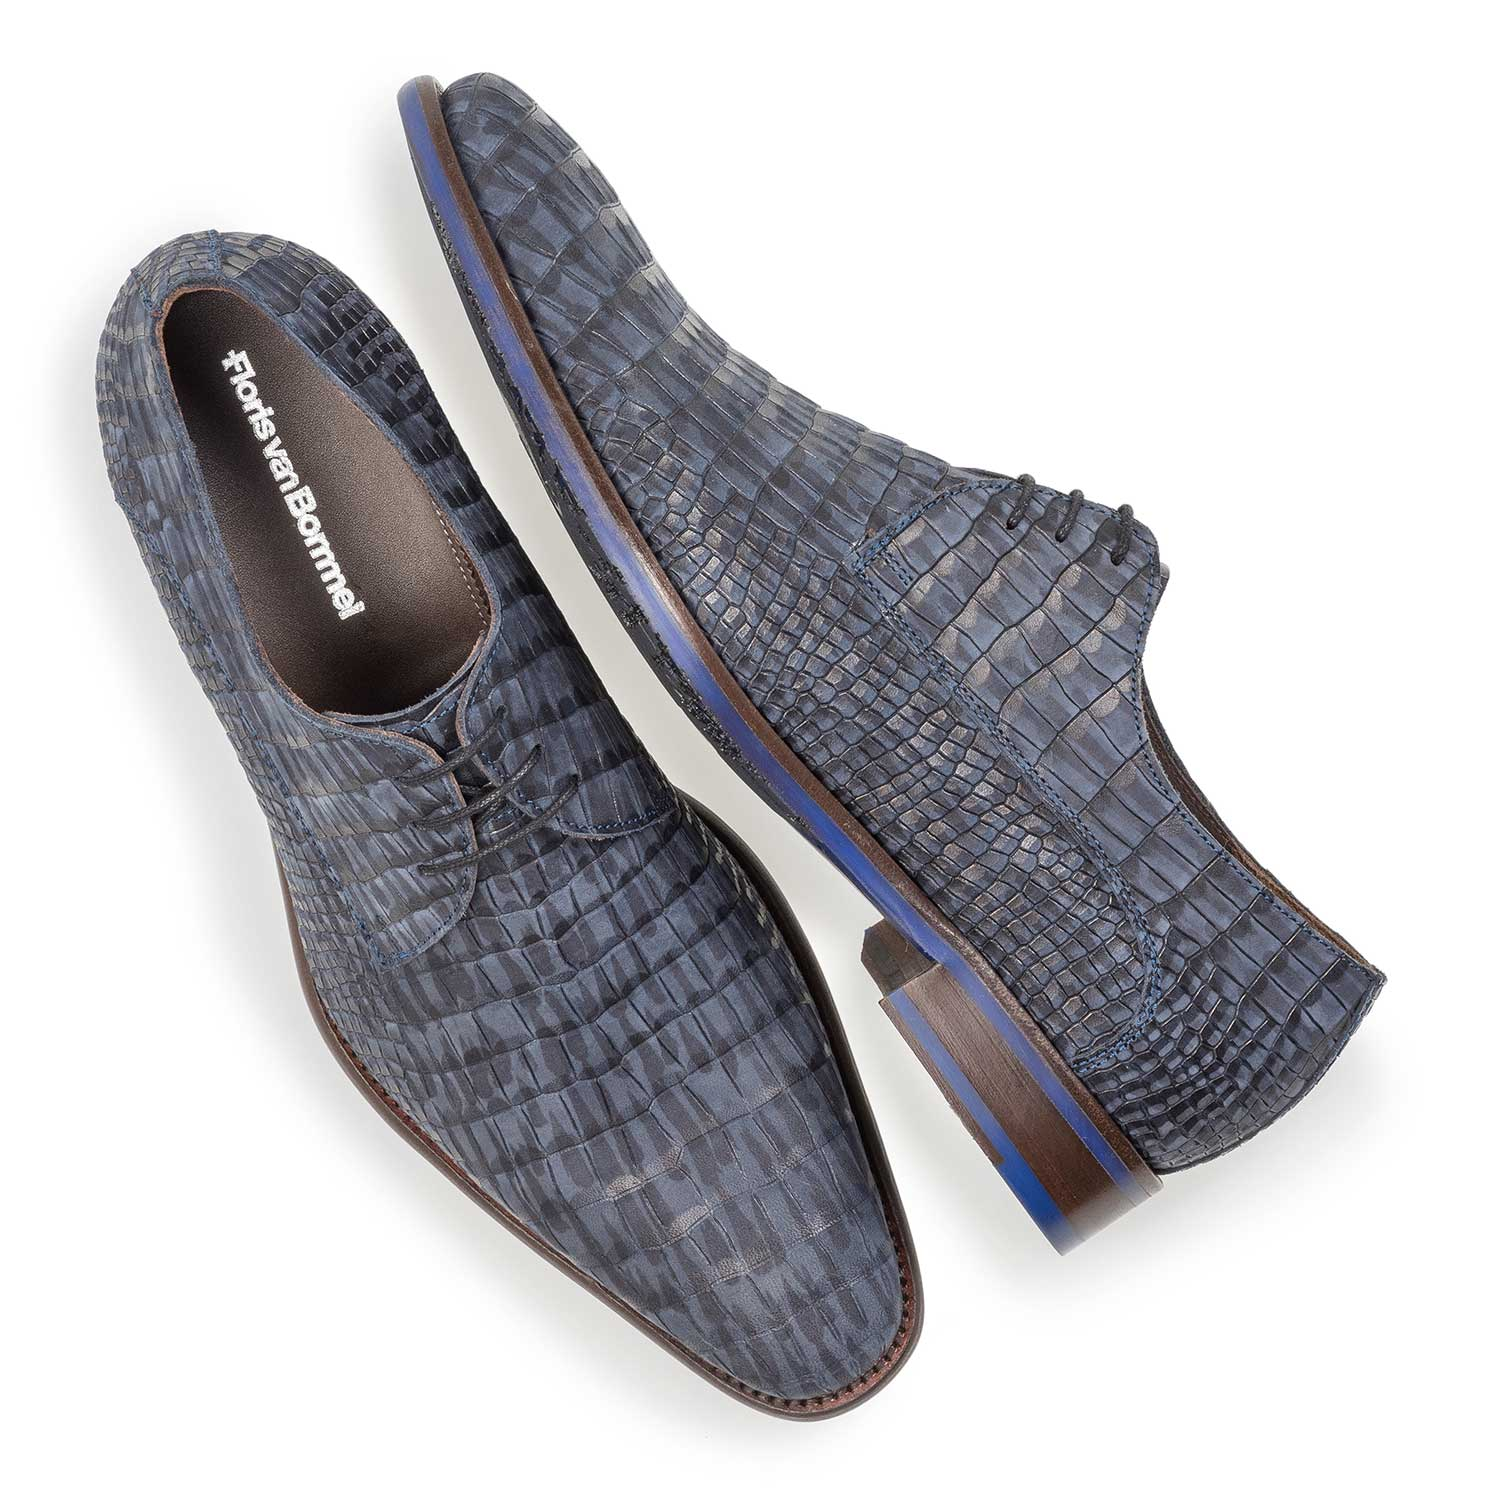 18159/11 - Blue nubuck leather lace shoe with croco print